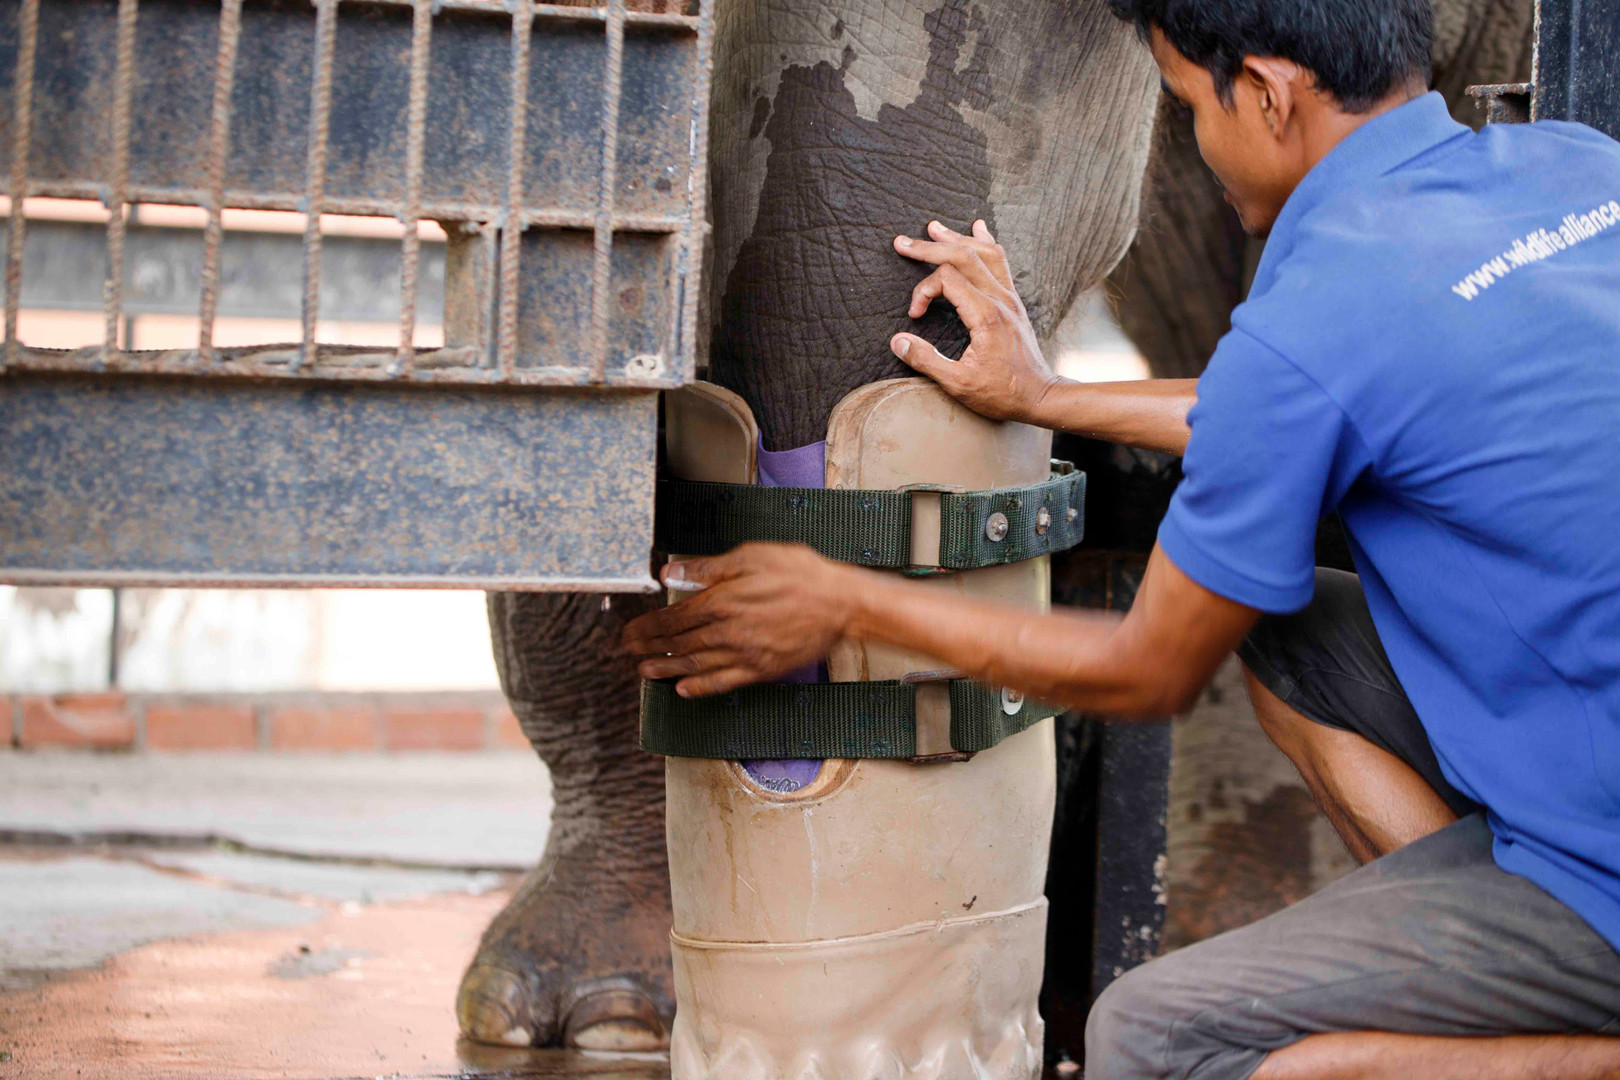 Wildlife Alliance keeper Houn Sairim replaces Asian Elephant Chhouk's prosthesis during his daily training within the elephant compound at Phnom Tamao Wildlife Rescue Centre. As an infant Chhouk was found with a severe wound to his foot, thought to be the work of an illegal snare.